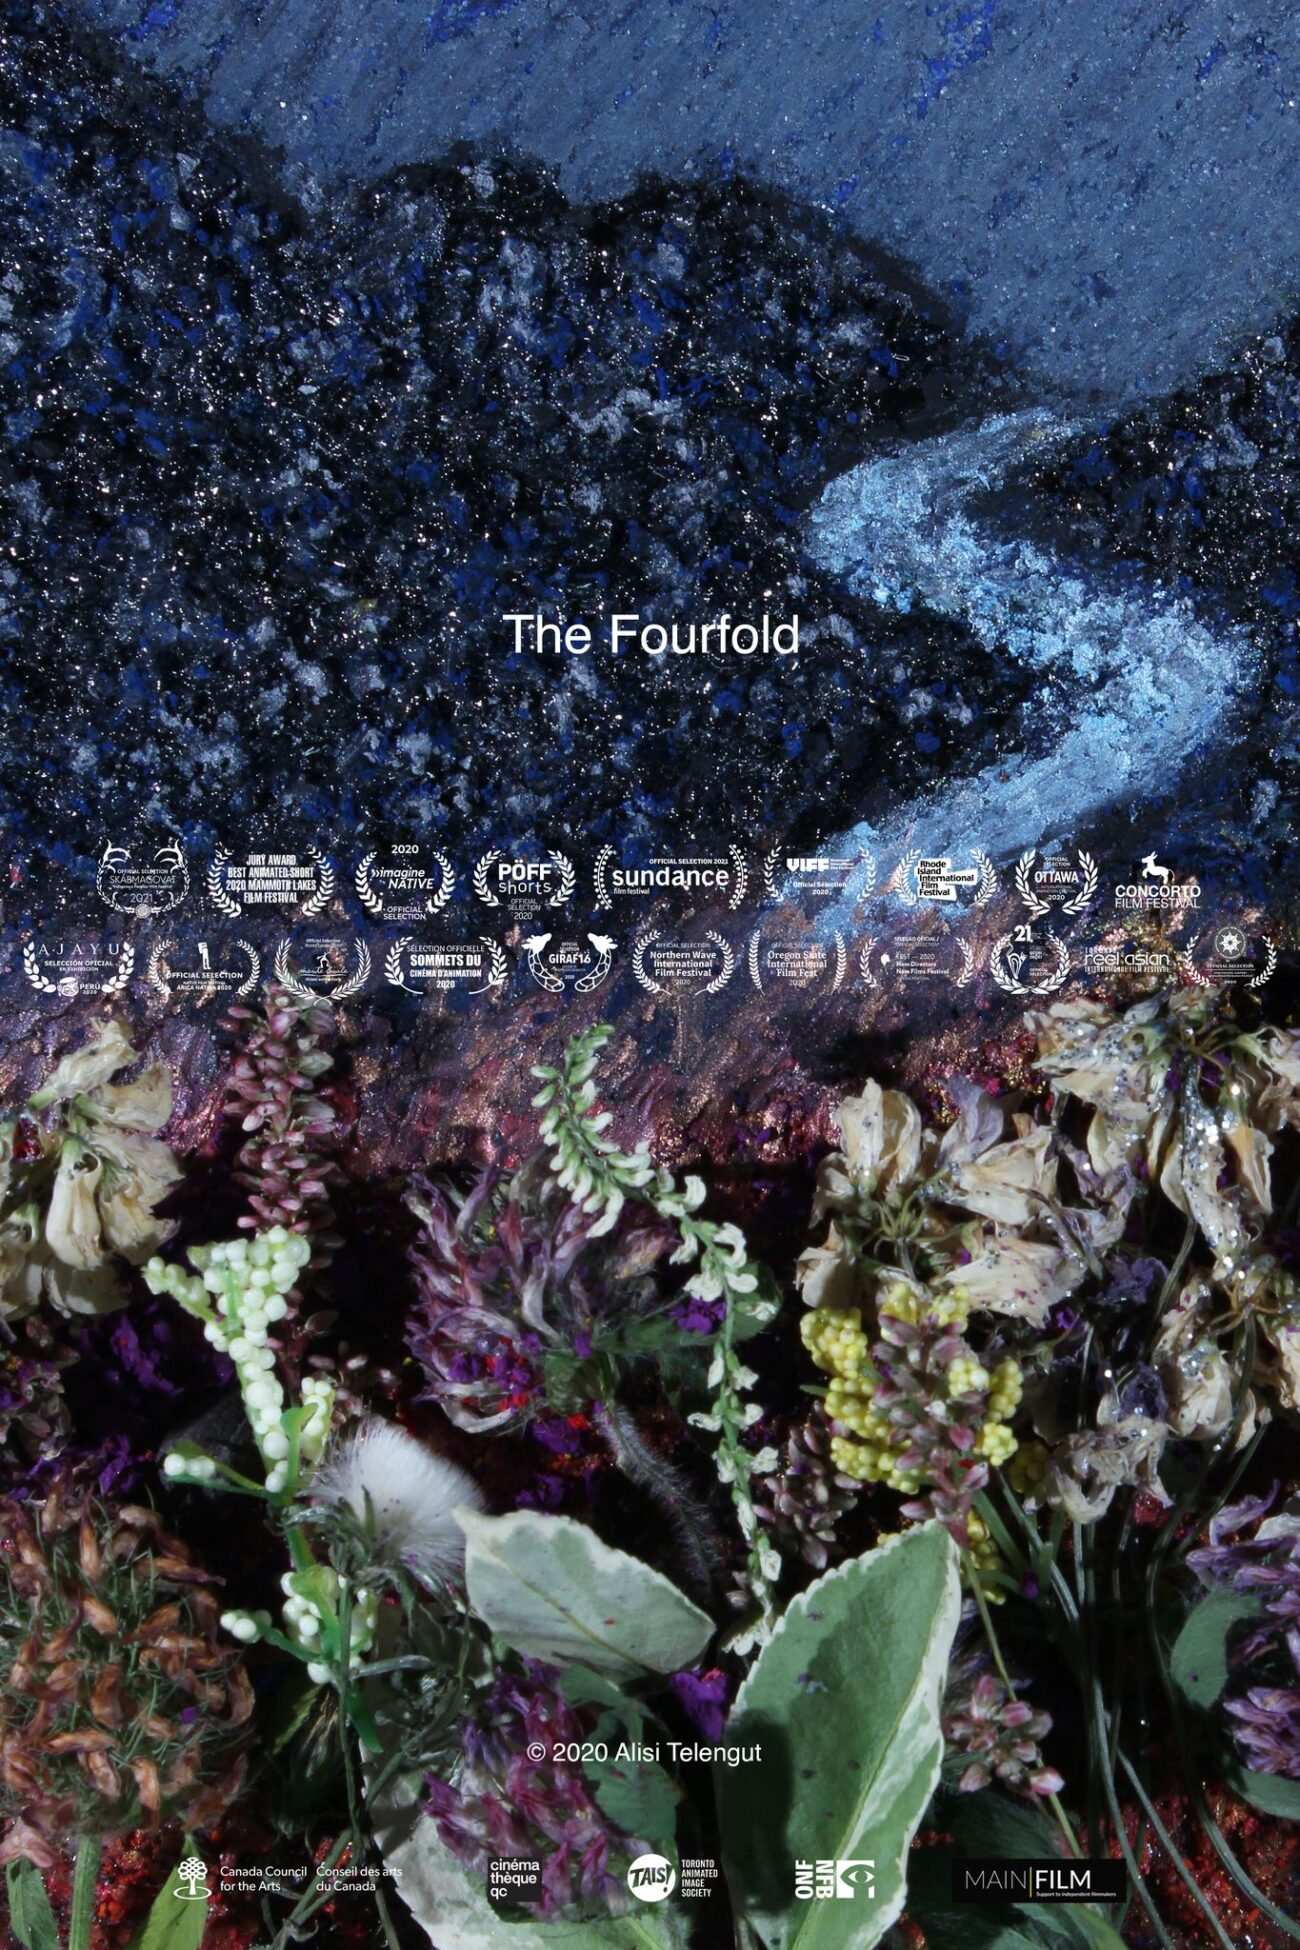 Canvas paintings are beautiful in themselves, but turning them into live films is extraordinary. Find beauty in the short film 'The Fourfold'.